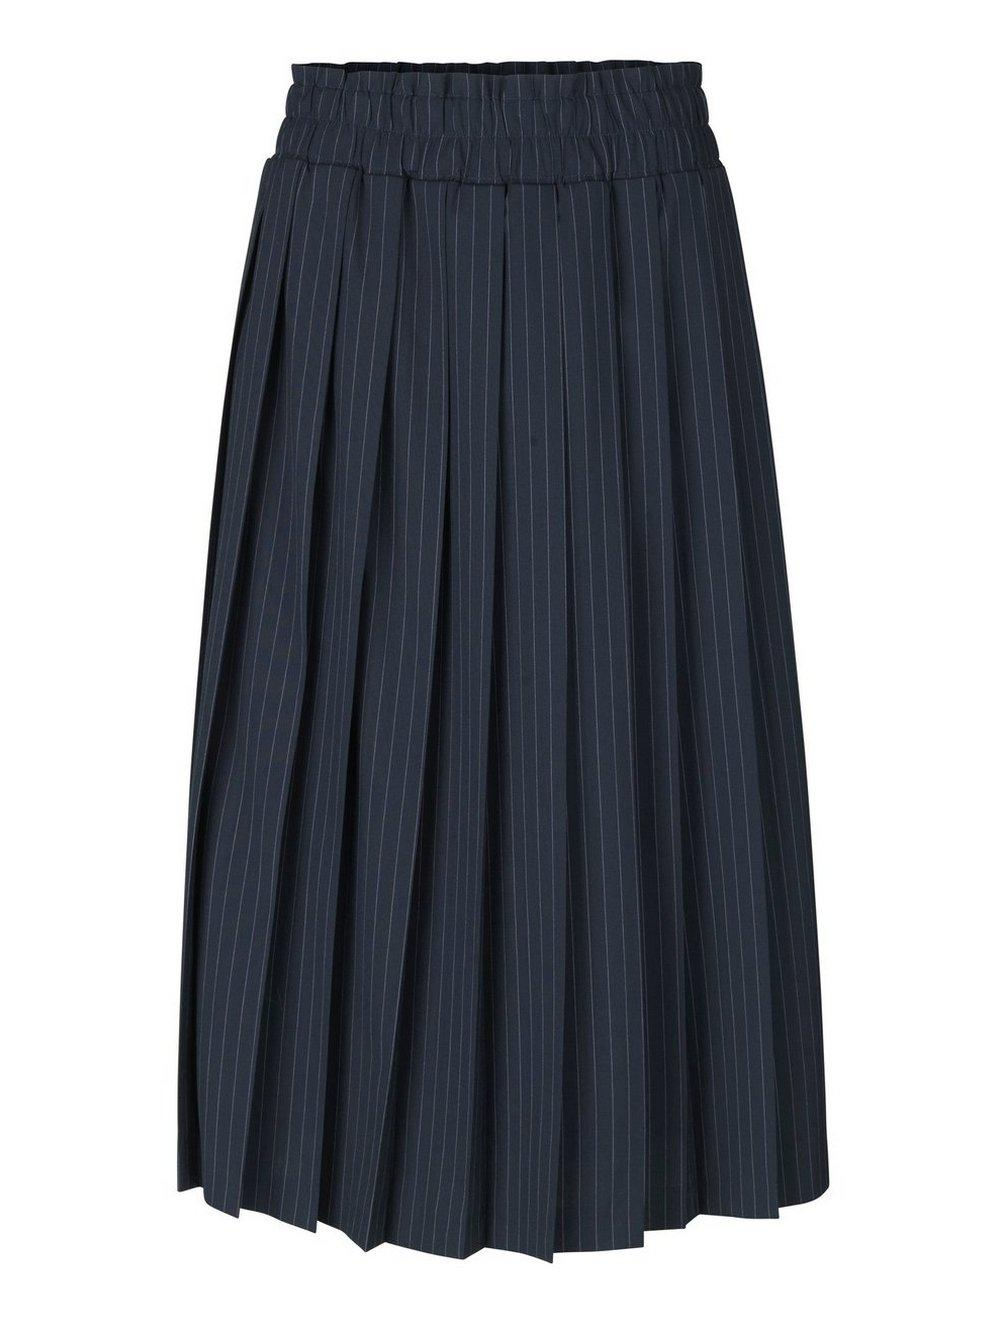 Serafina Pleated Skirt Item # 21210